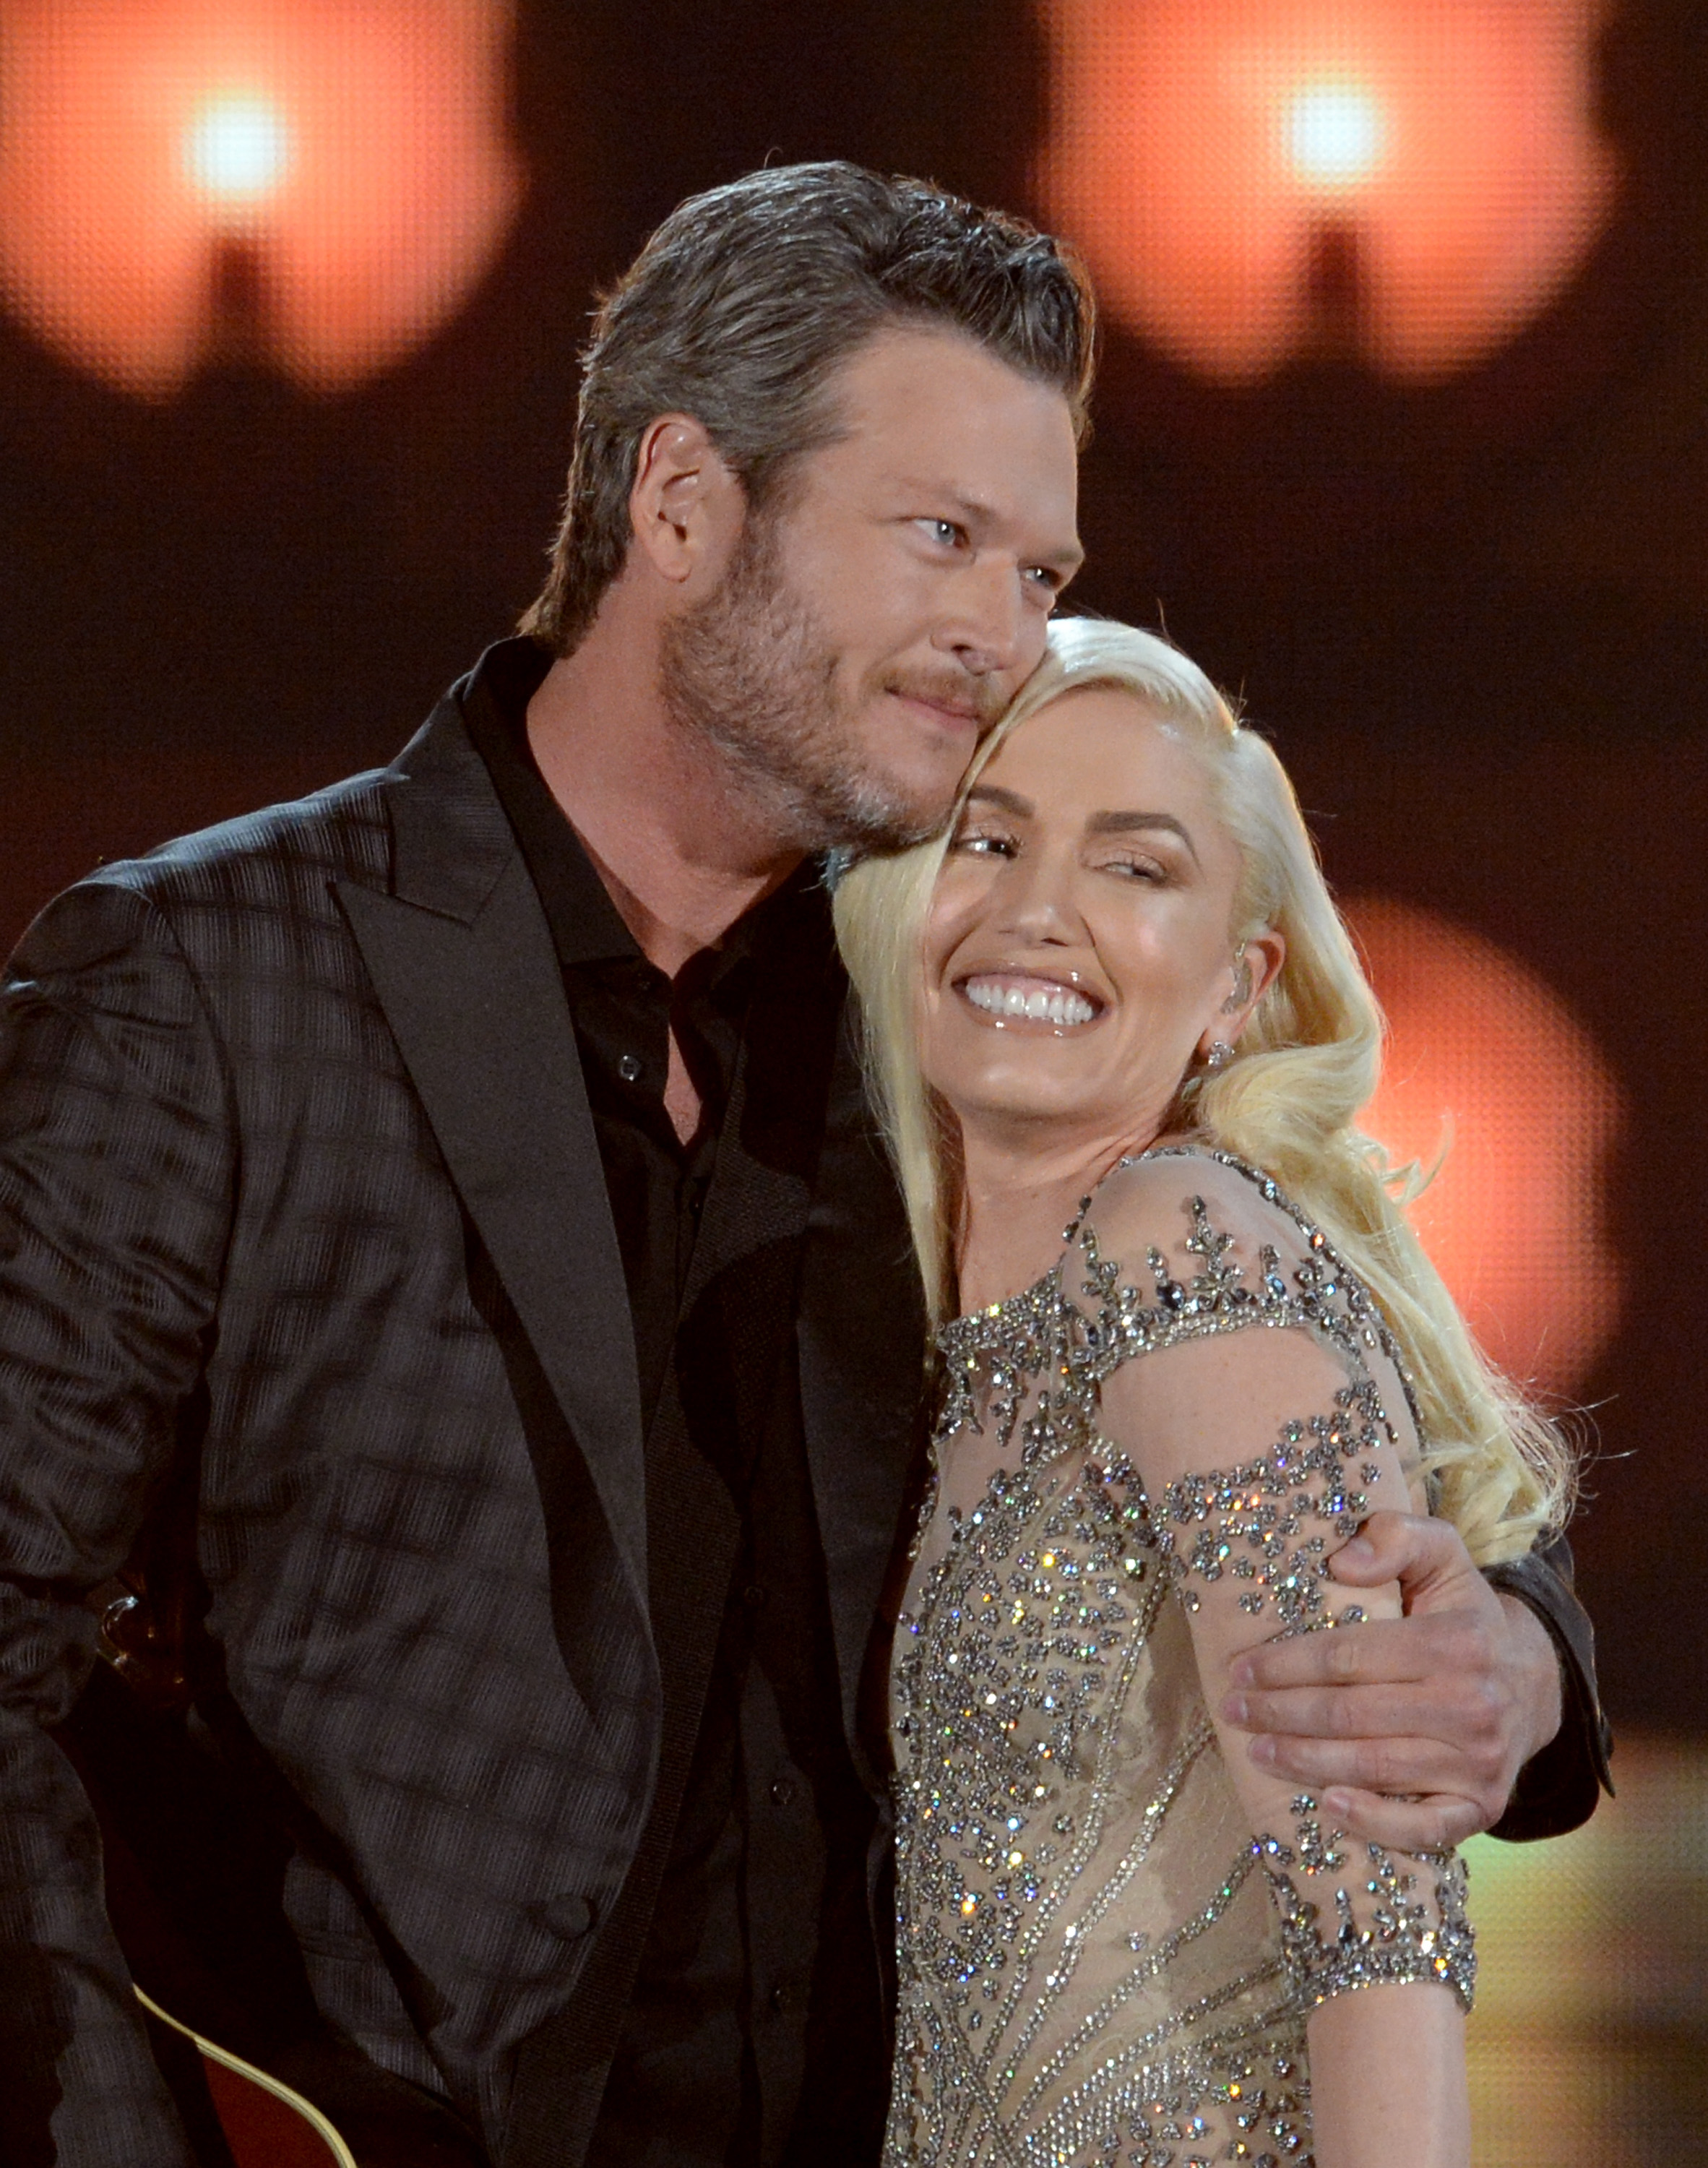 Gwen Stefani, Blake Shelton Update: Couple Perform At Charity Event, Shelton Applauds Future Wife's Singing